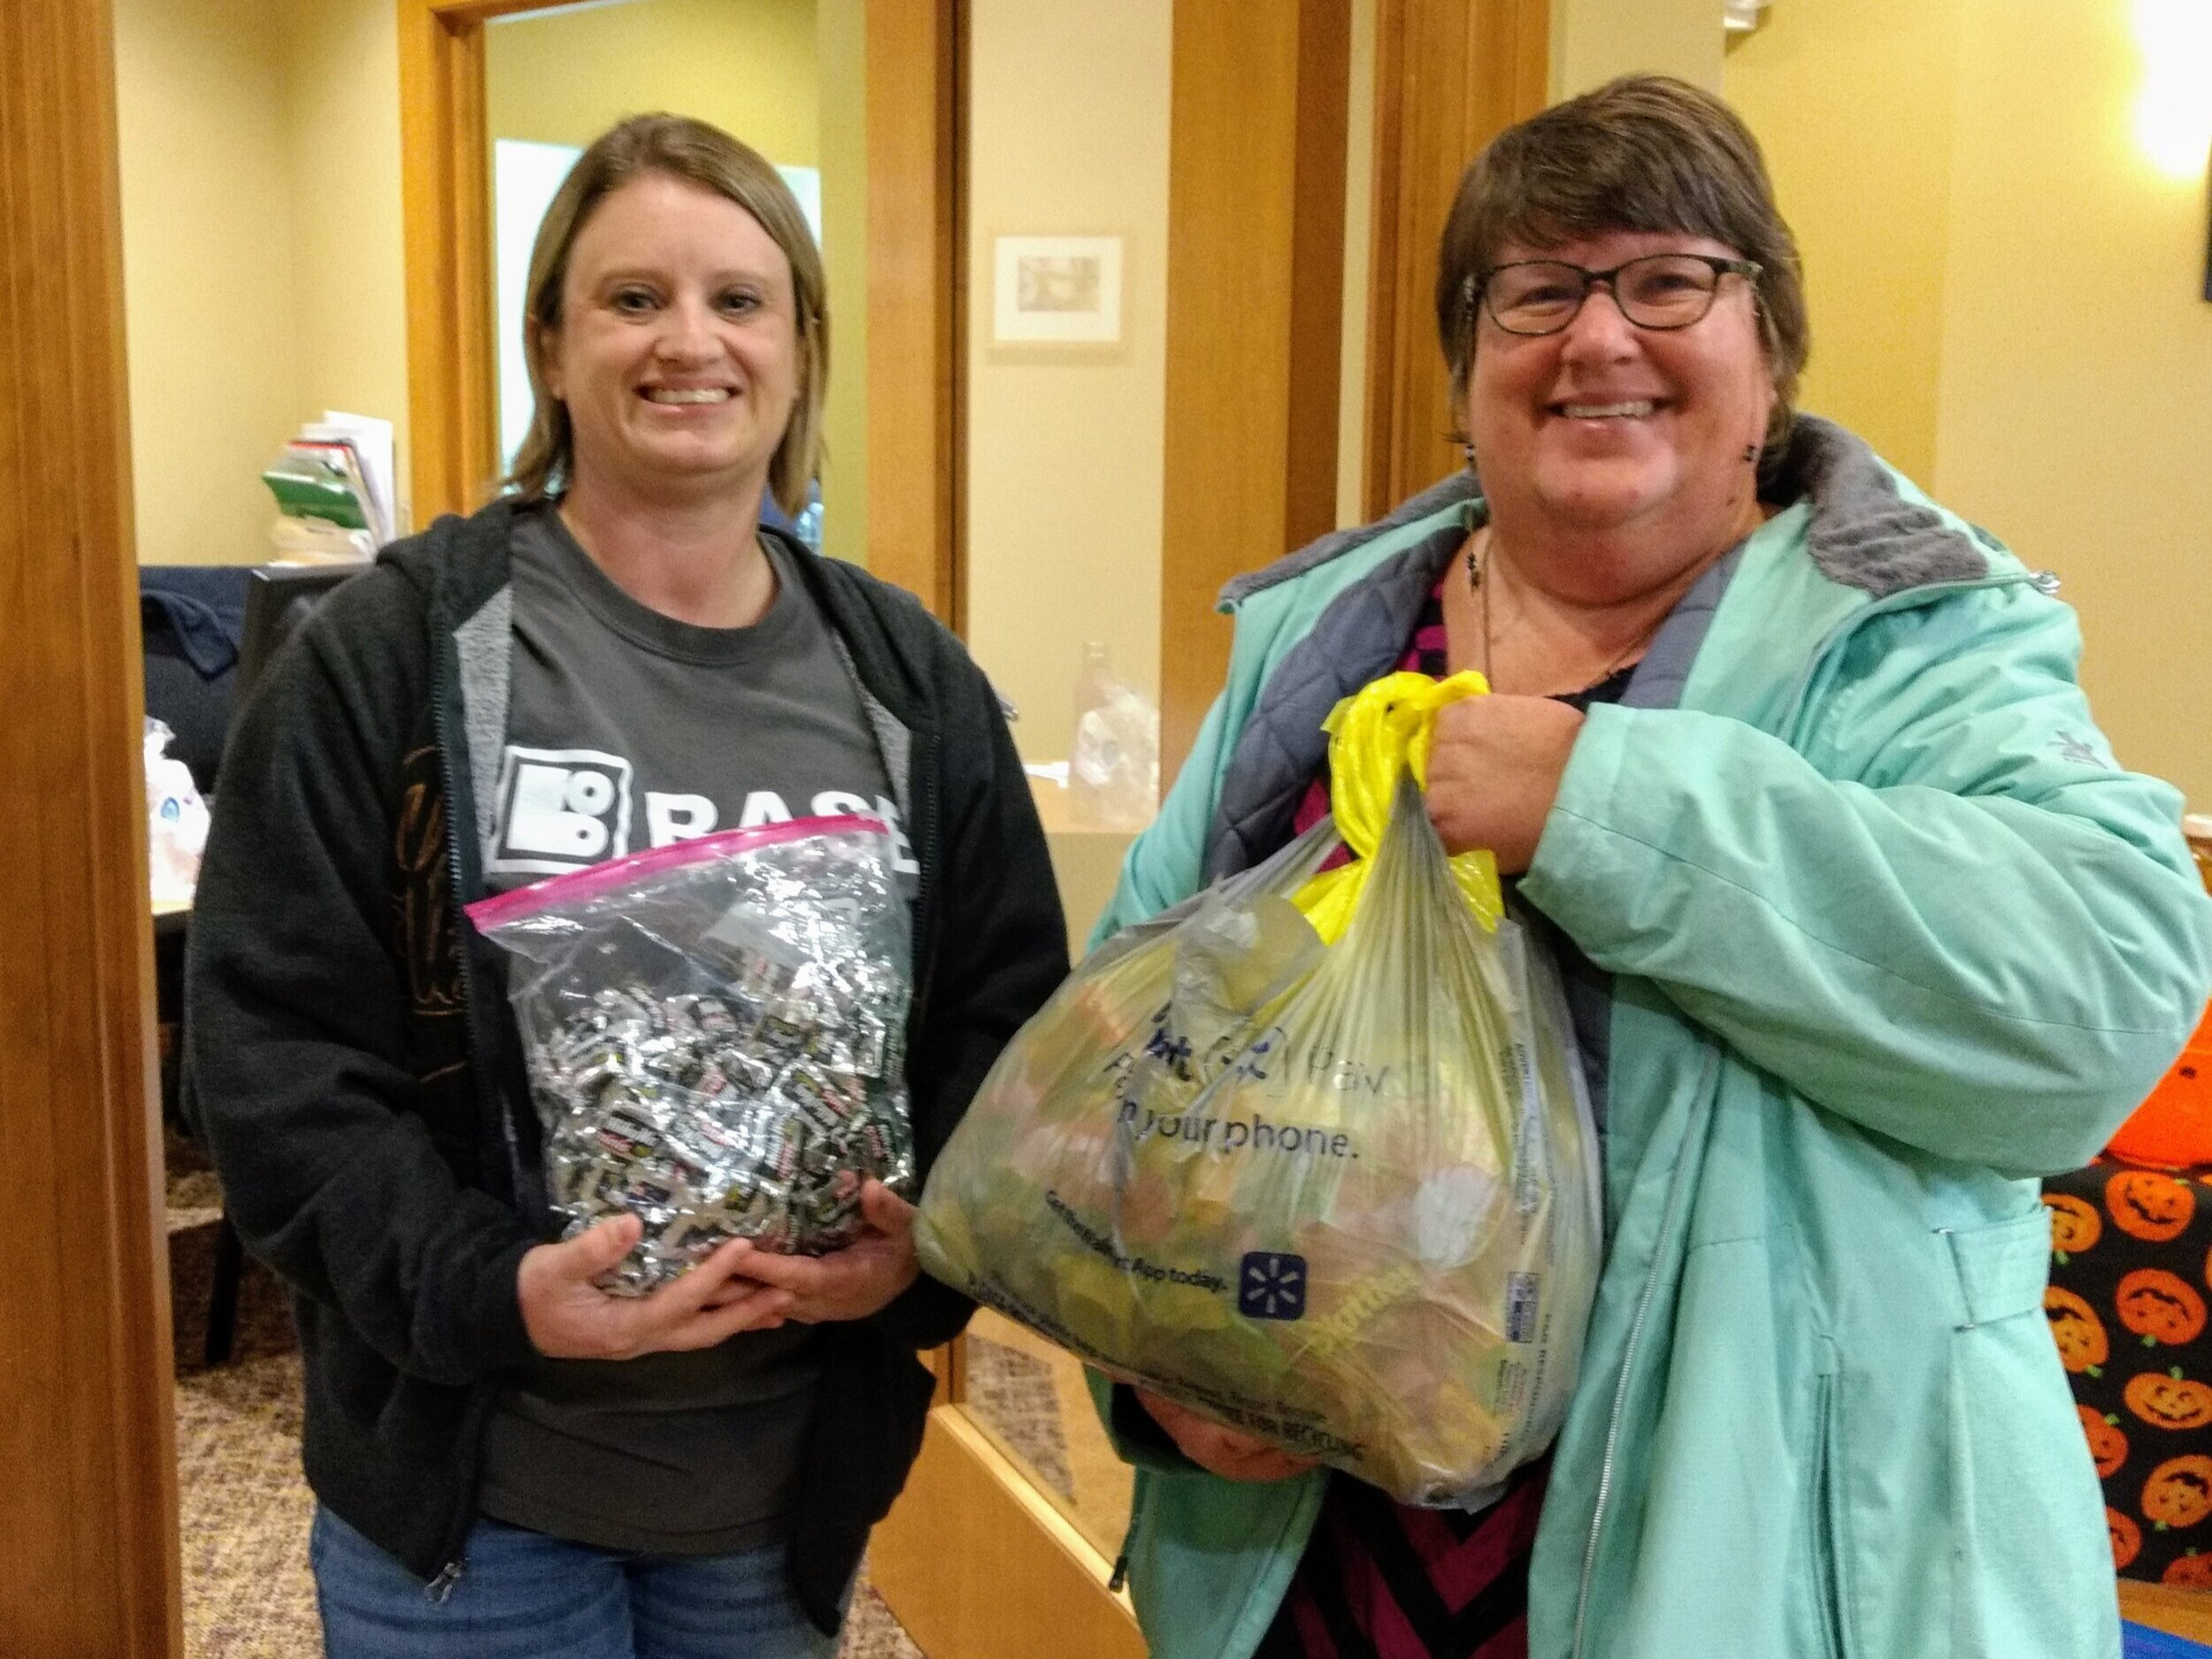 Project Reflection - BASE sites collected a total of 12.1 pounds of candy and Ms Melissa and Ms Beth delivered the candy to Rock River Dental on Monday, November 4th, 2019